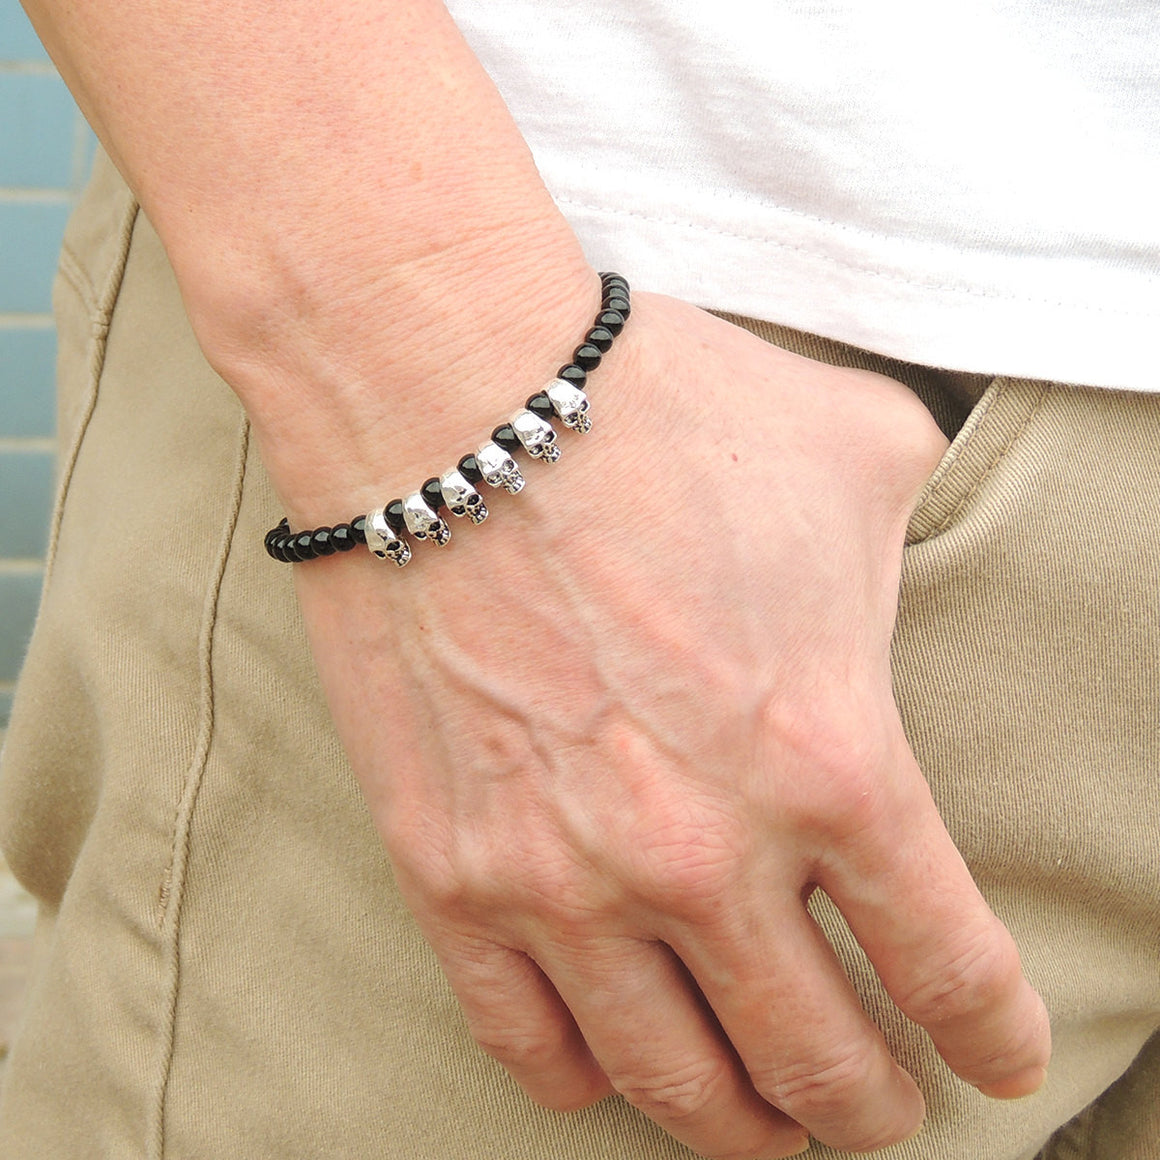 4mm Black Onyx Healing Gemstone Bracelet with S925 Sterling Silver Skulls & Clasp - Handmade by Gem & Silver BR347